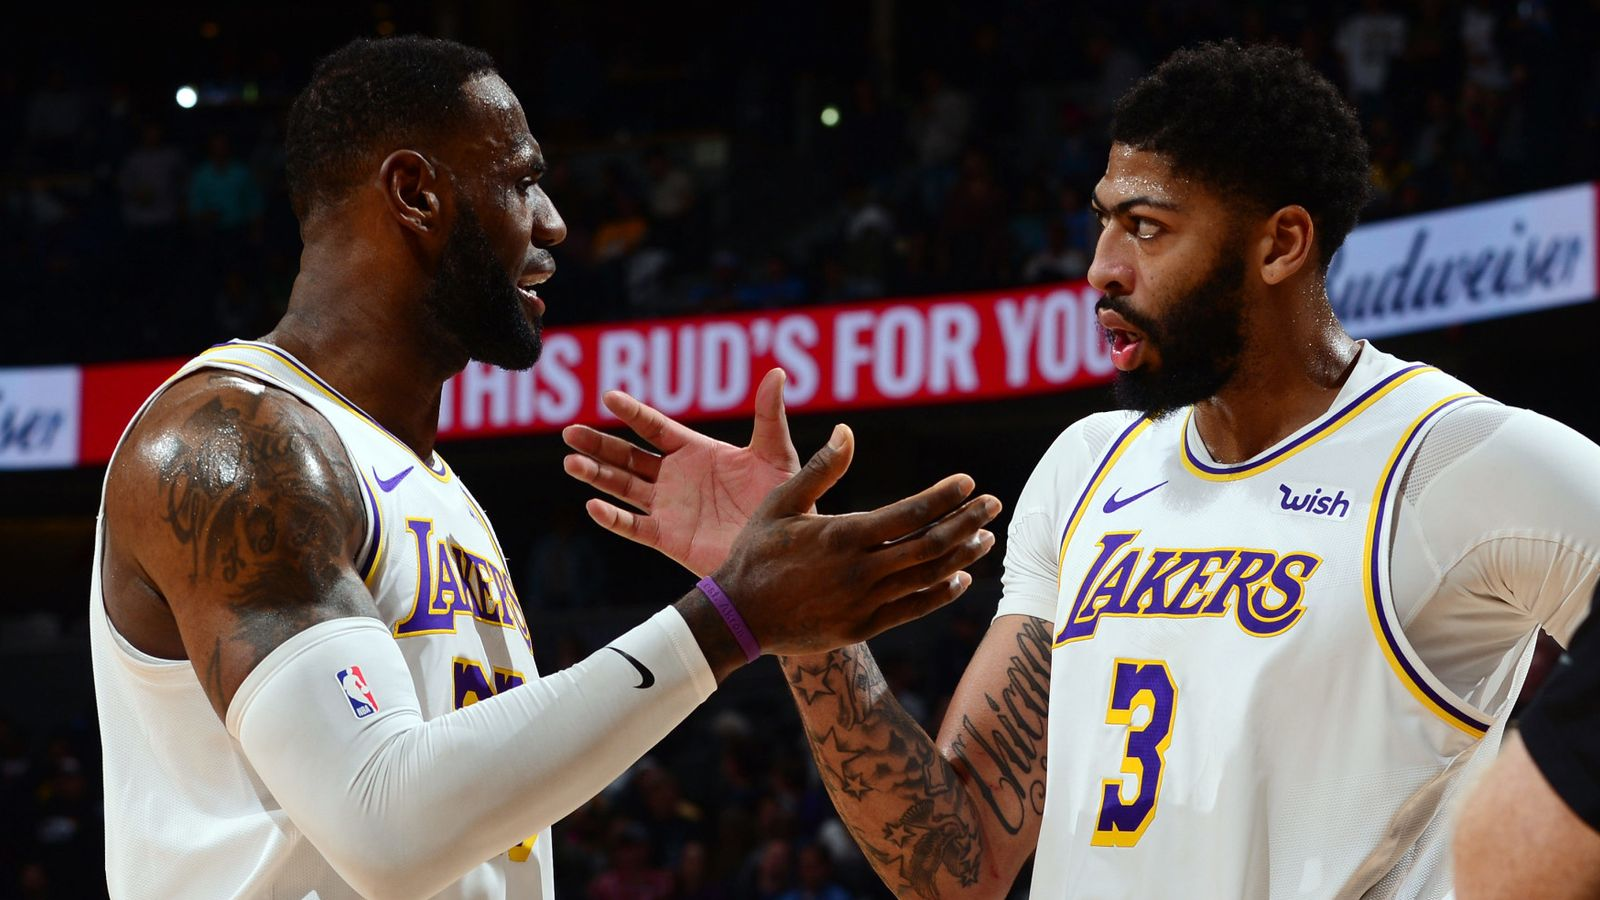 Los Angeles Lakers visit Denver Nuggets in heavyweight Western Conference clash